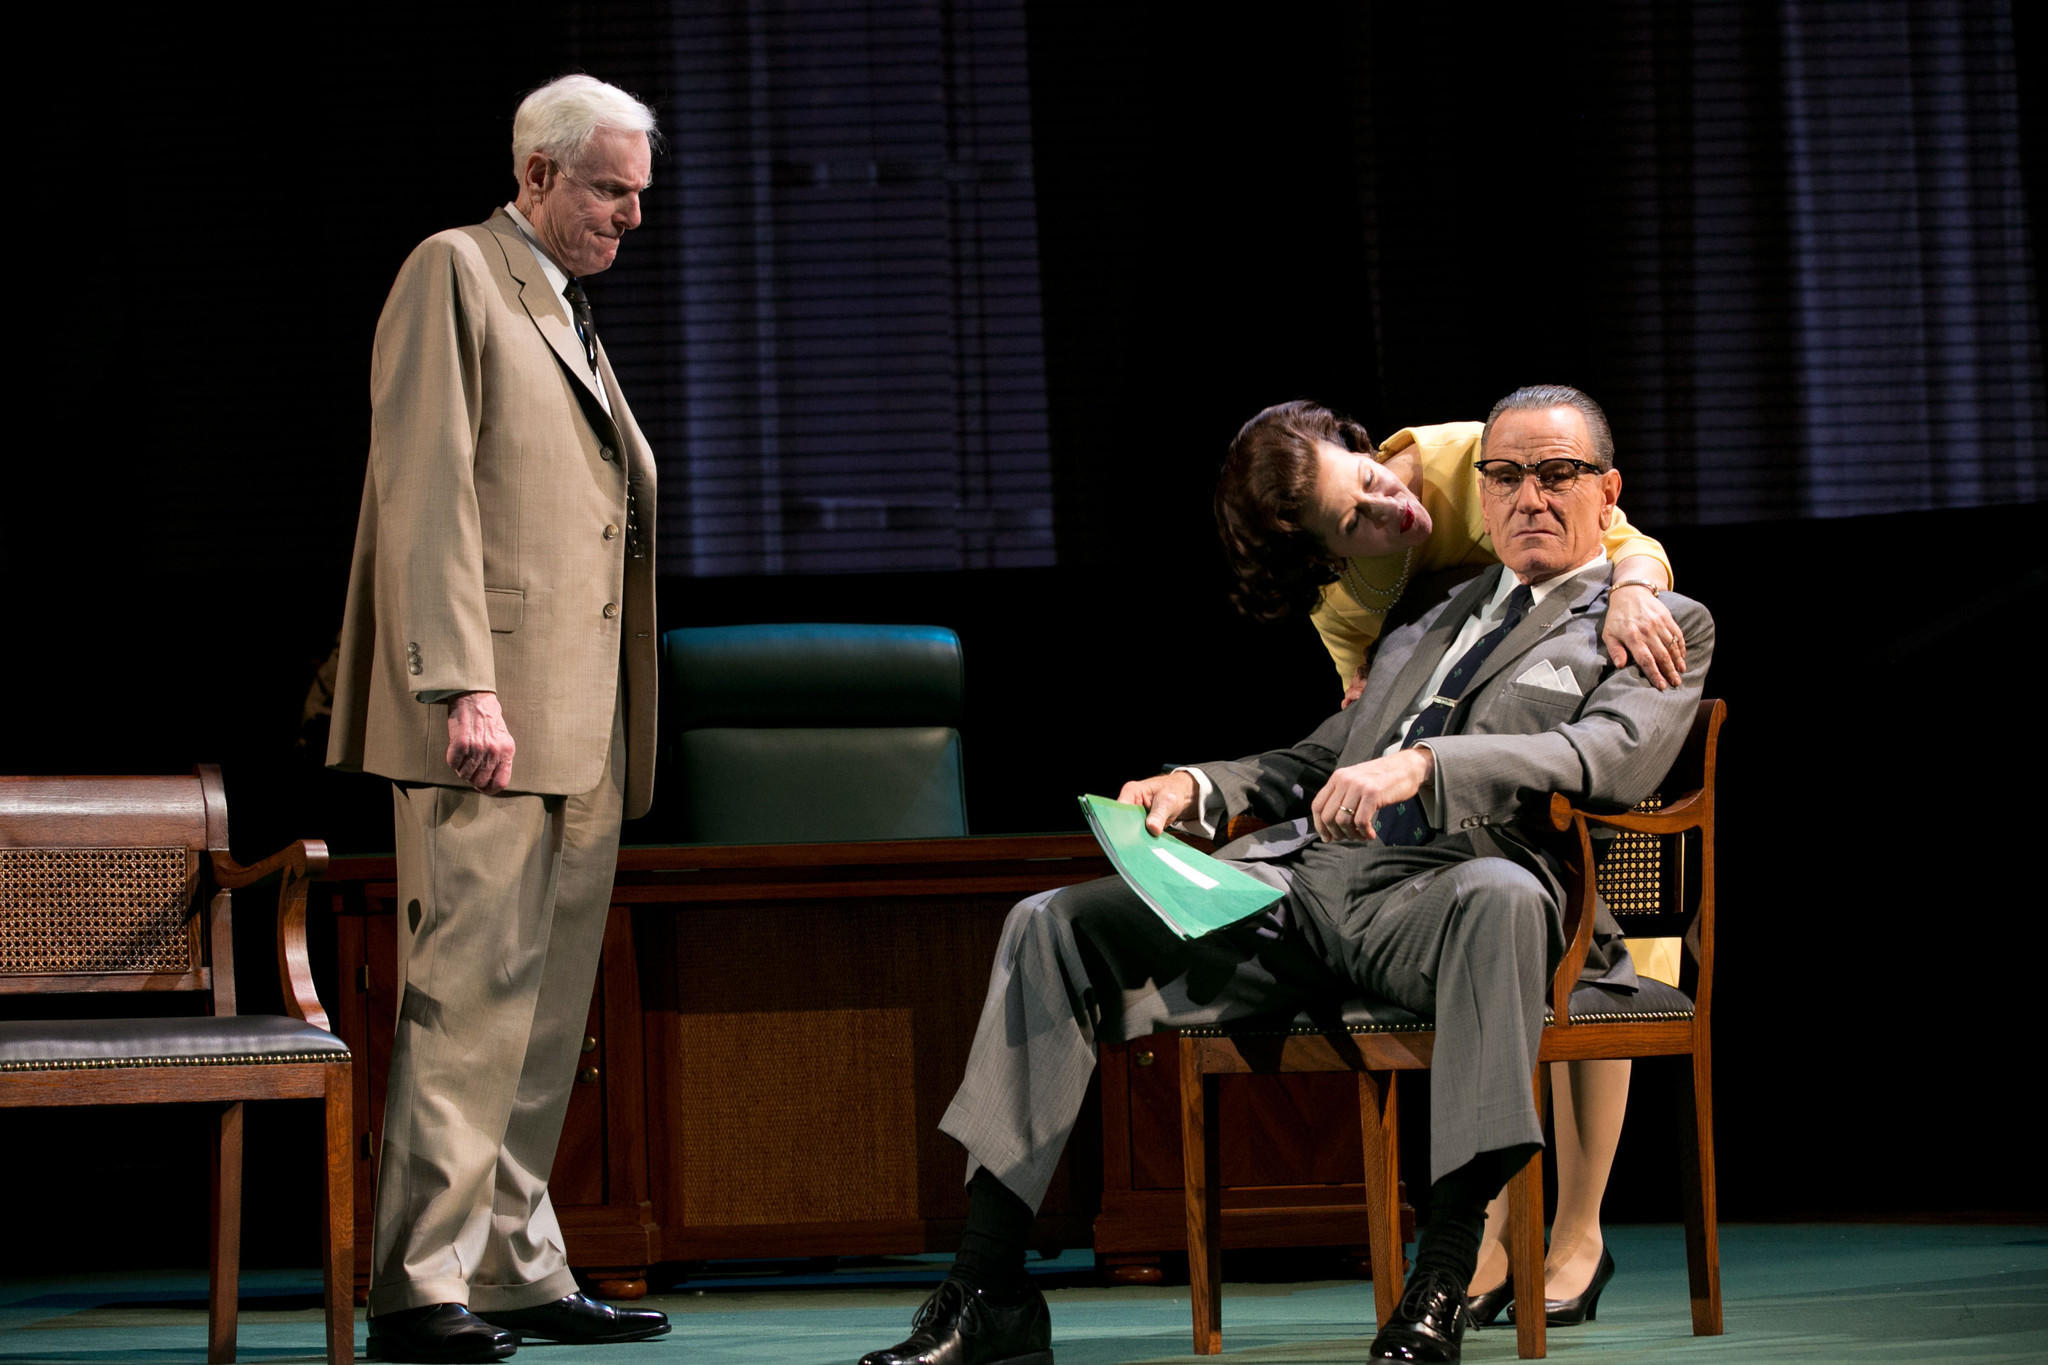 "Bryan Cranston (sitting) playing President Lyndon B. Johnson in the play ""All the Way"" on Broadway. With him are John McMartin as Sen. Richard Russell and Betsy Aidem as Lady Bird Johnson."